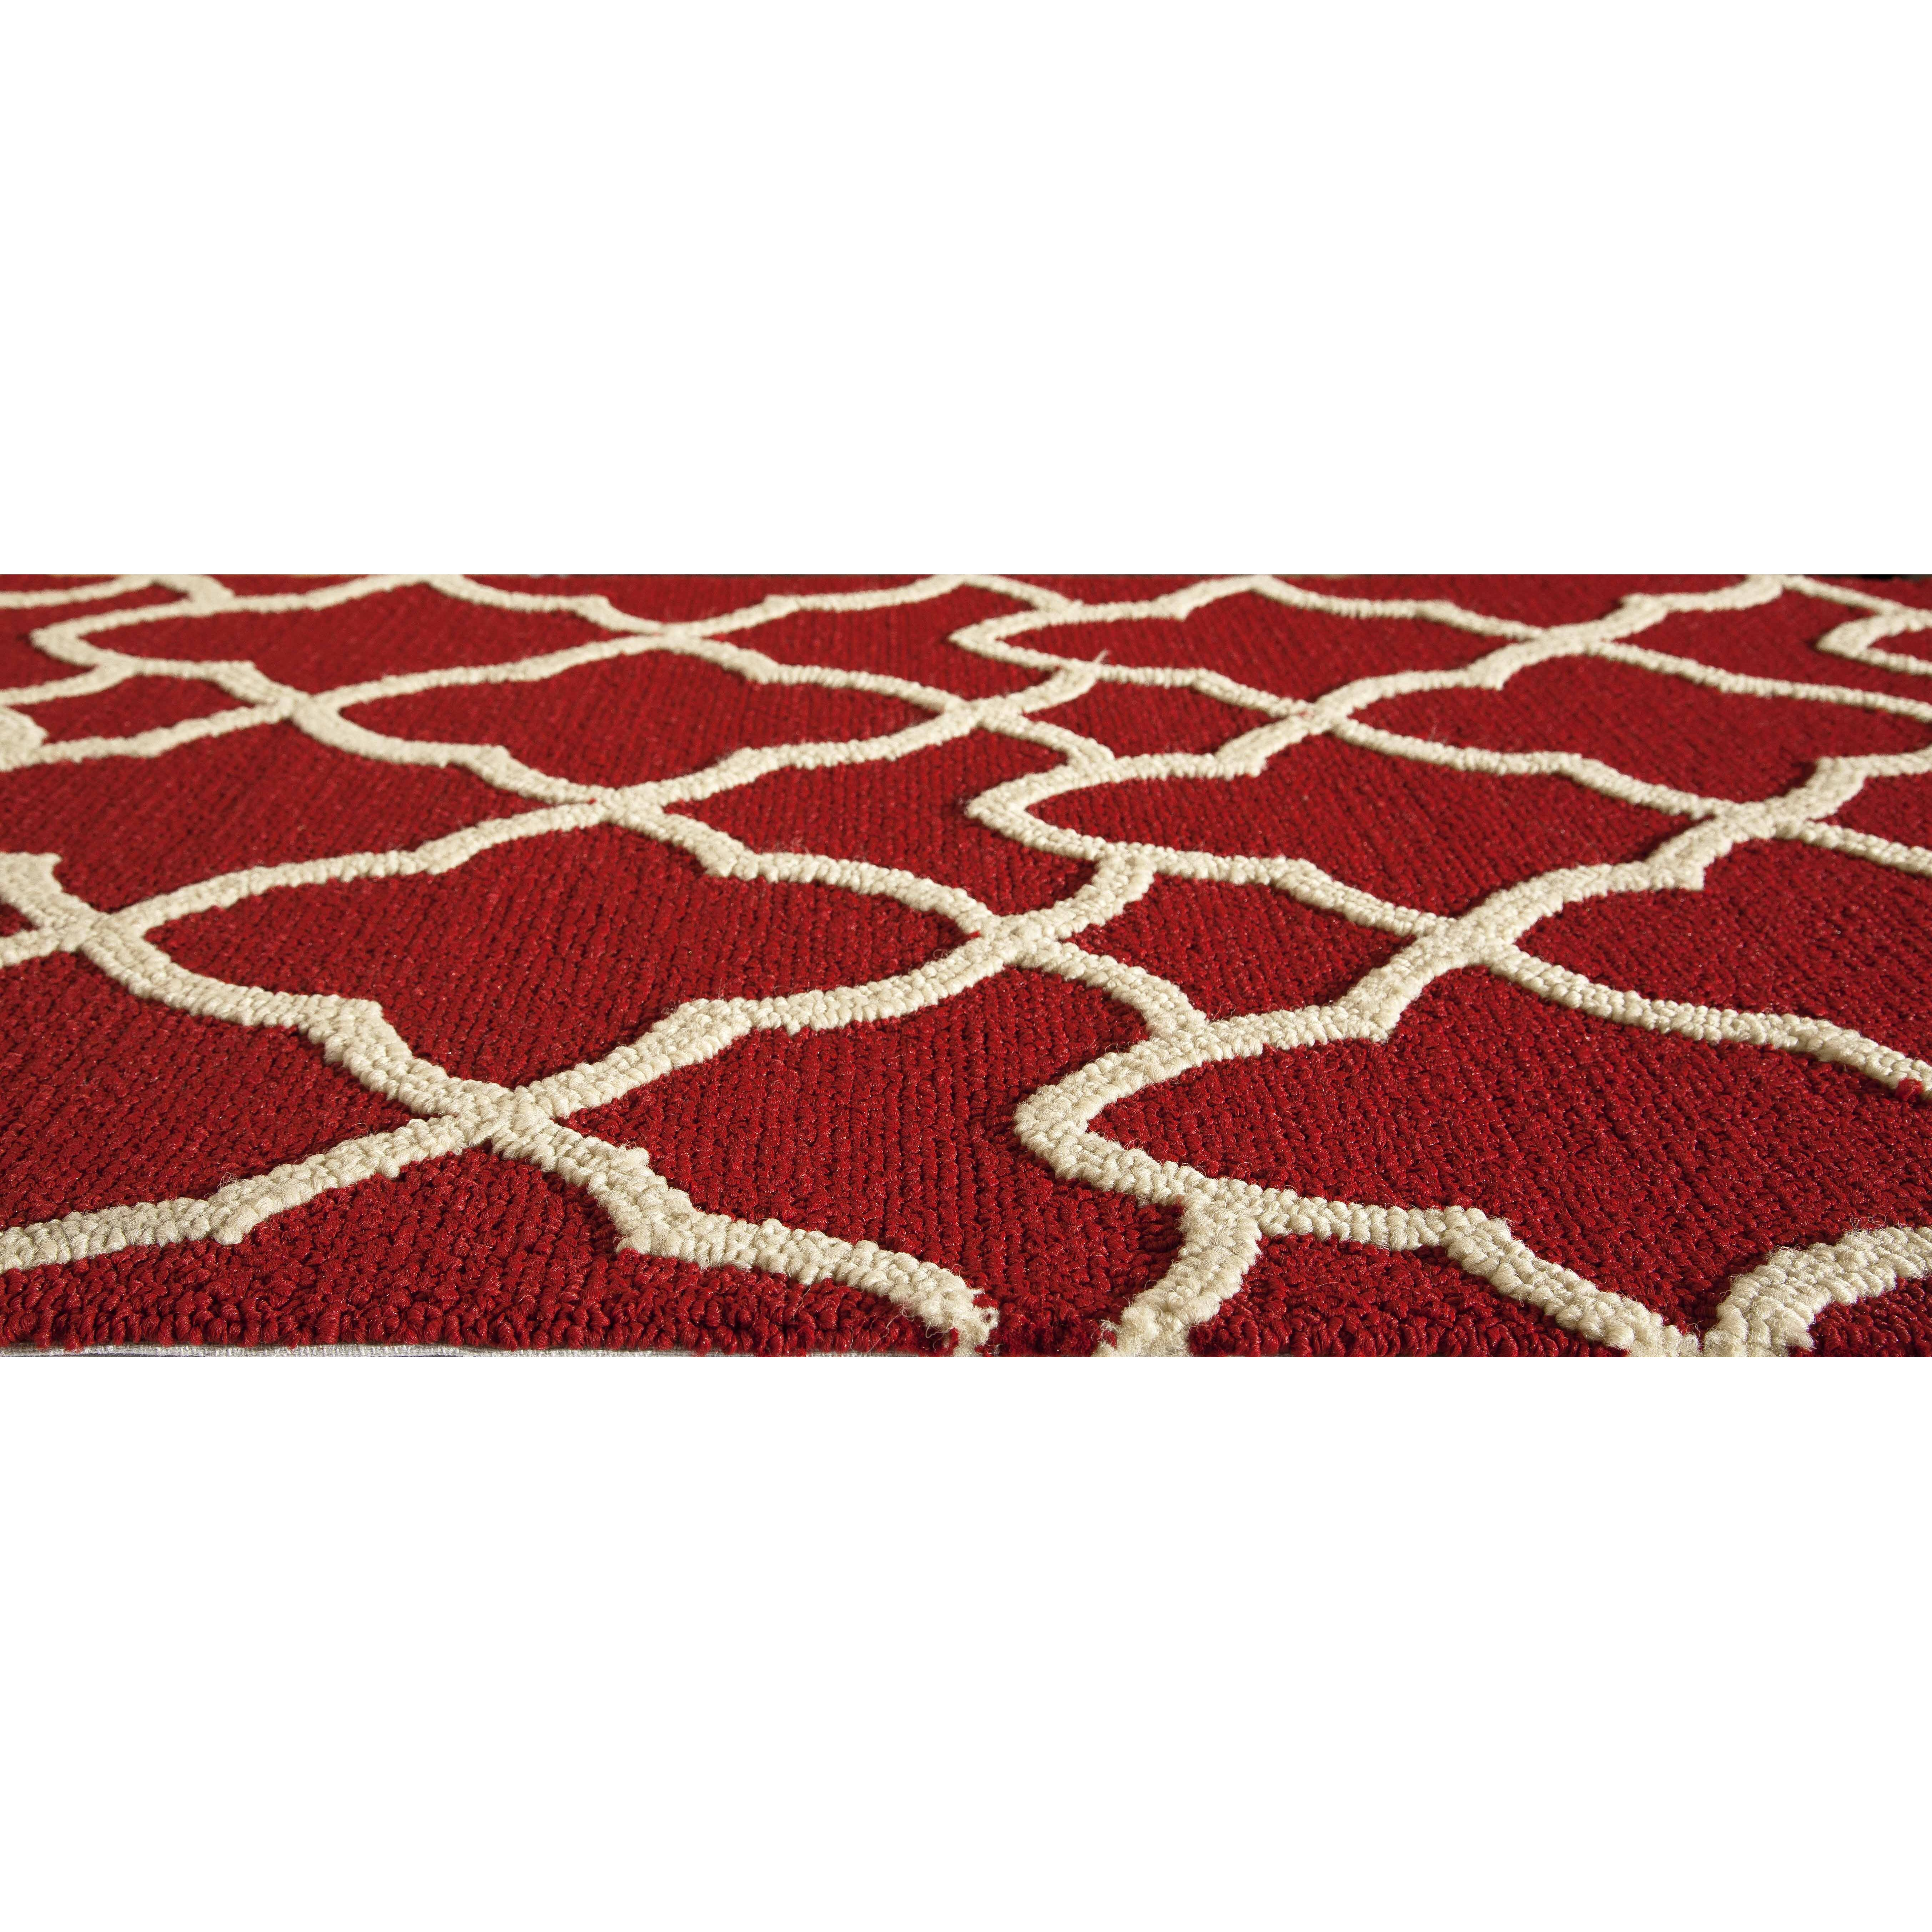 The Conestoga Trading Co Red Indoor Outdoor Area Rug